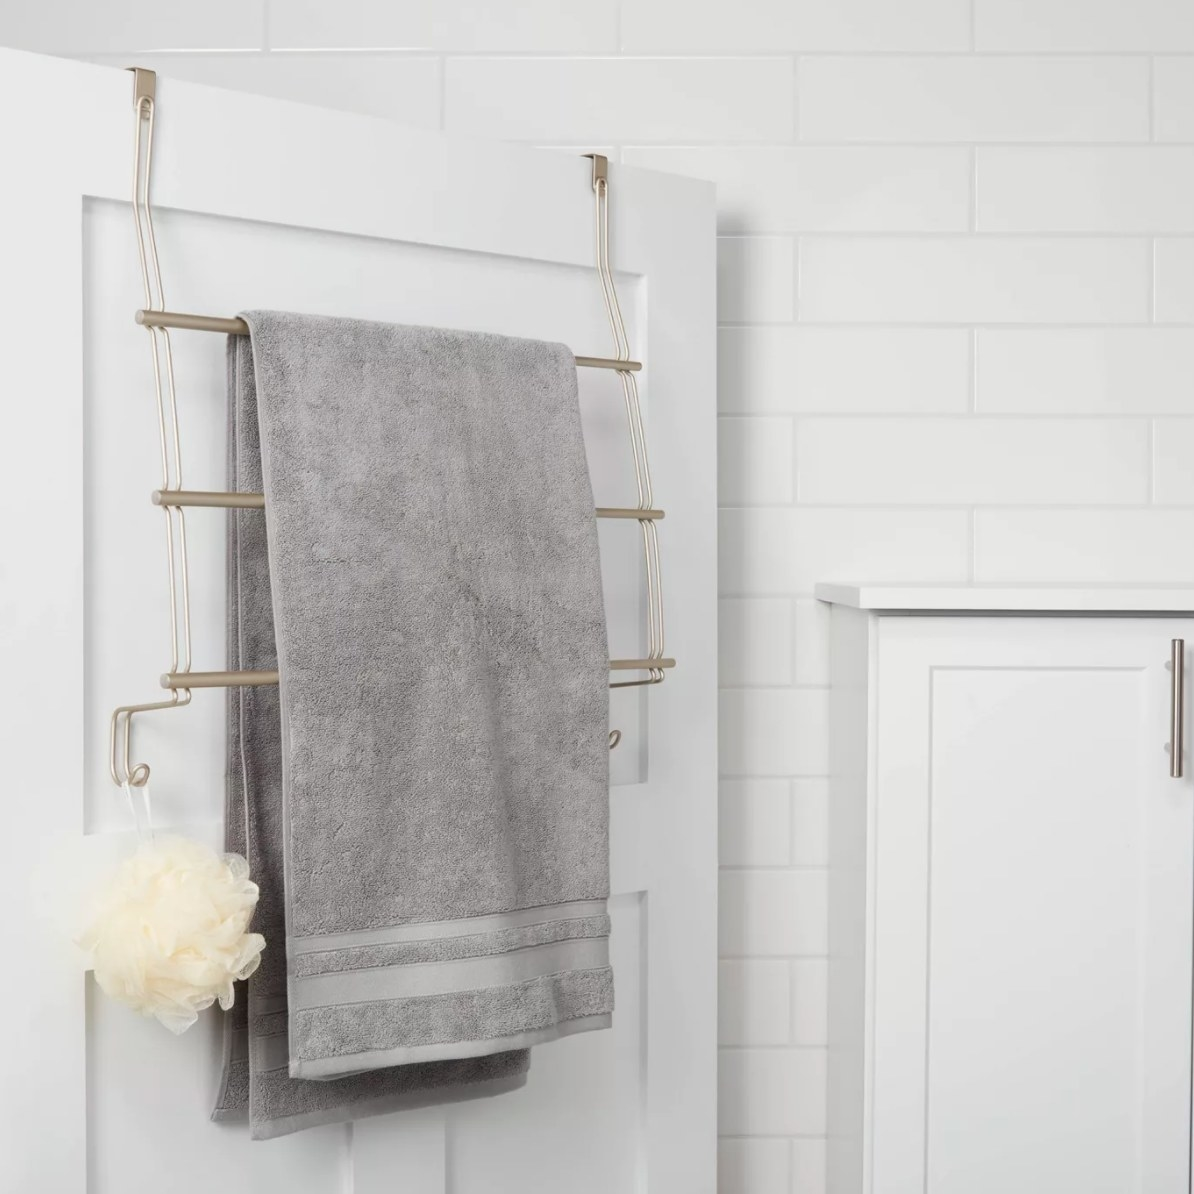 A metal three-bar, towel rack with hooks